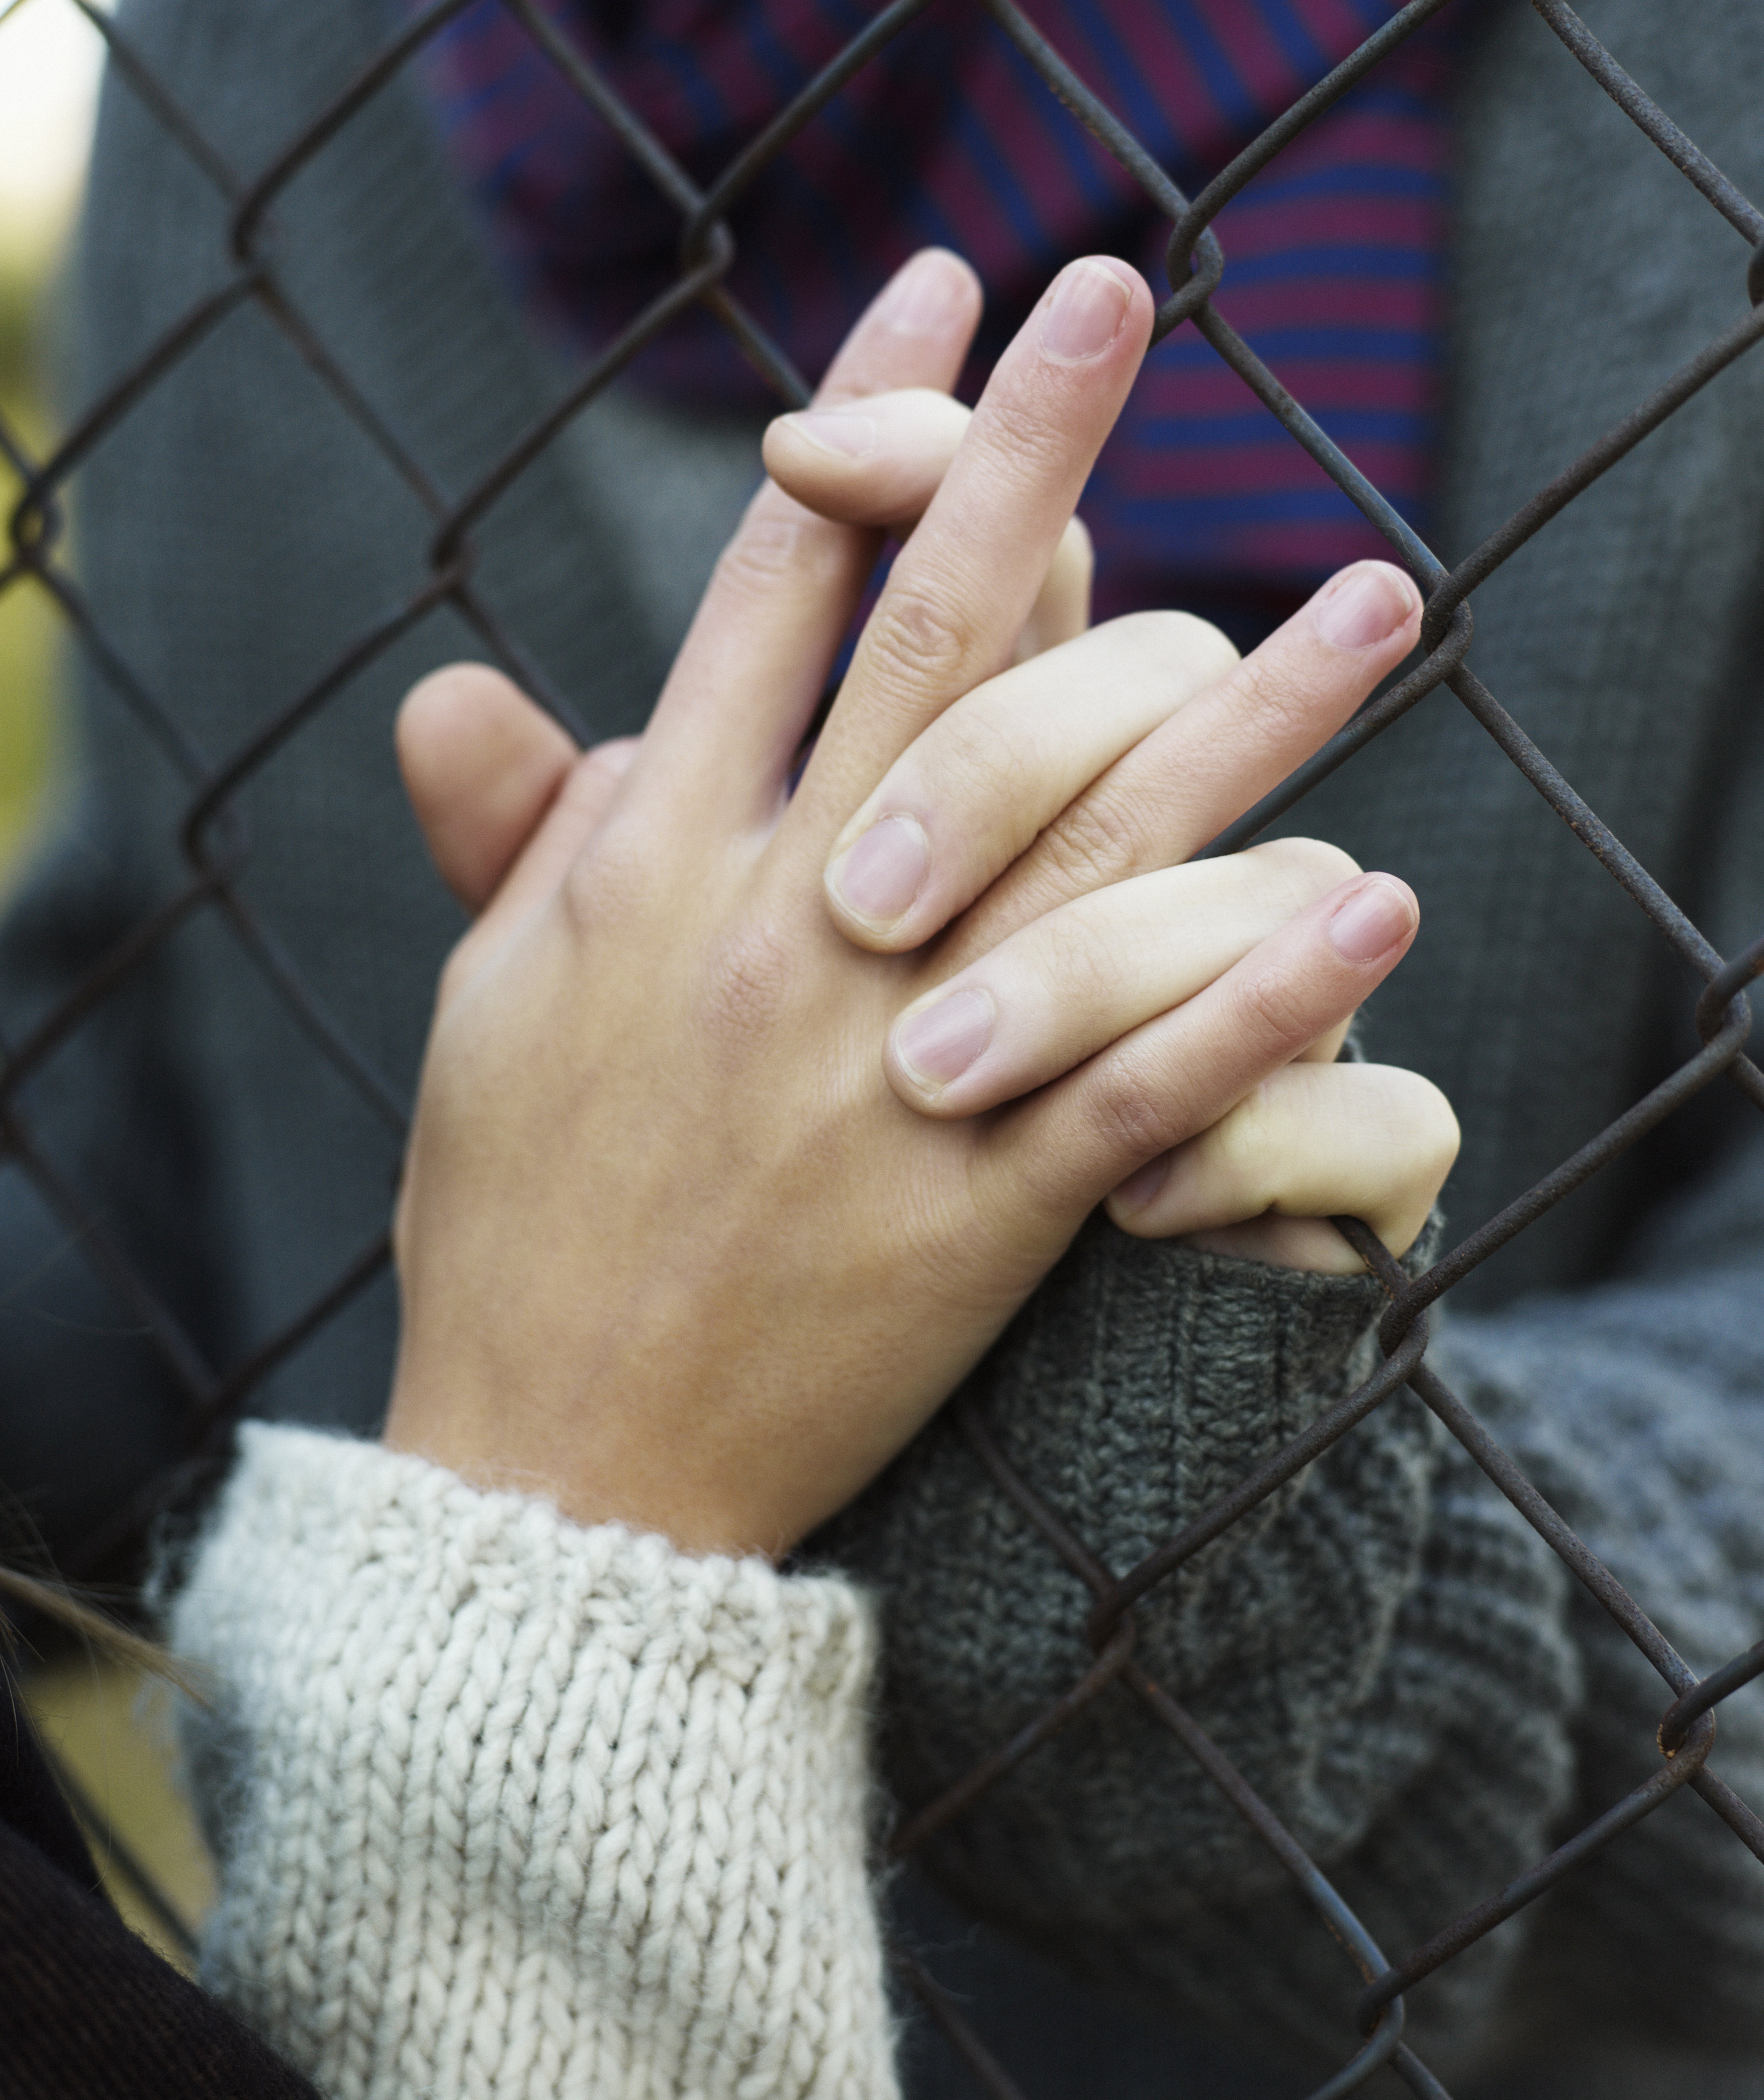 holding-hands-fence